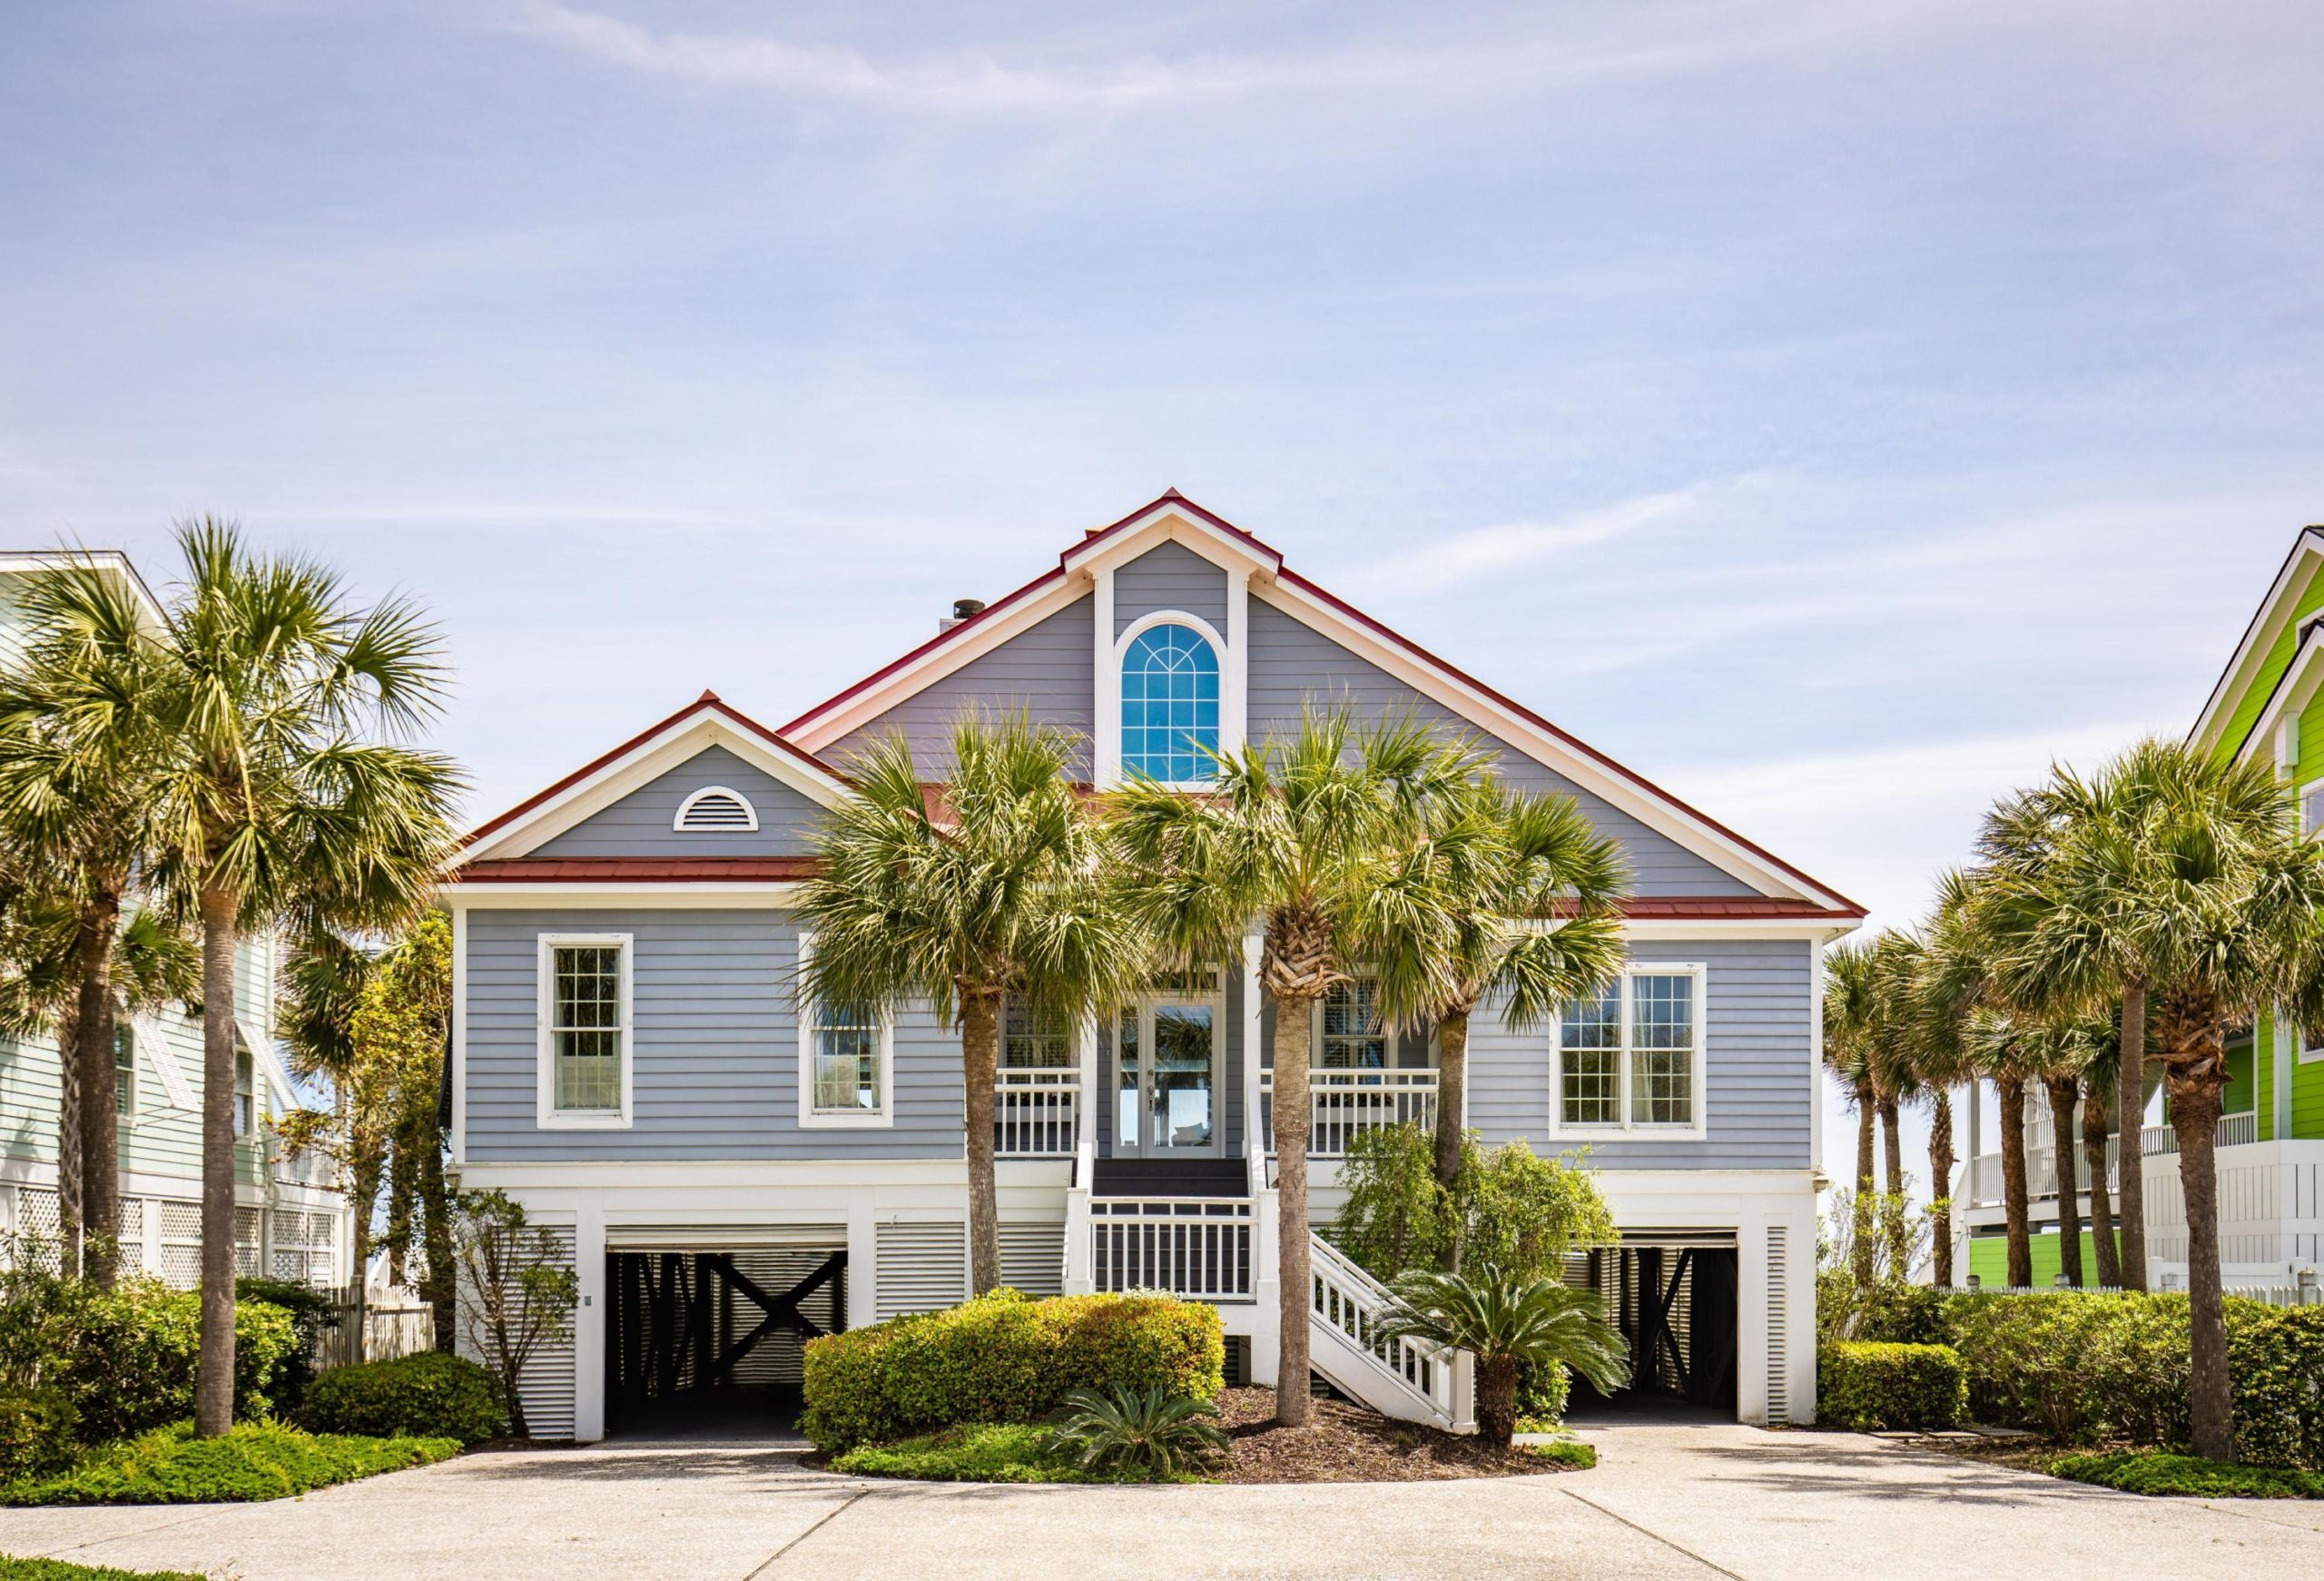 Isle of Palms Home Insurance